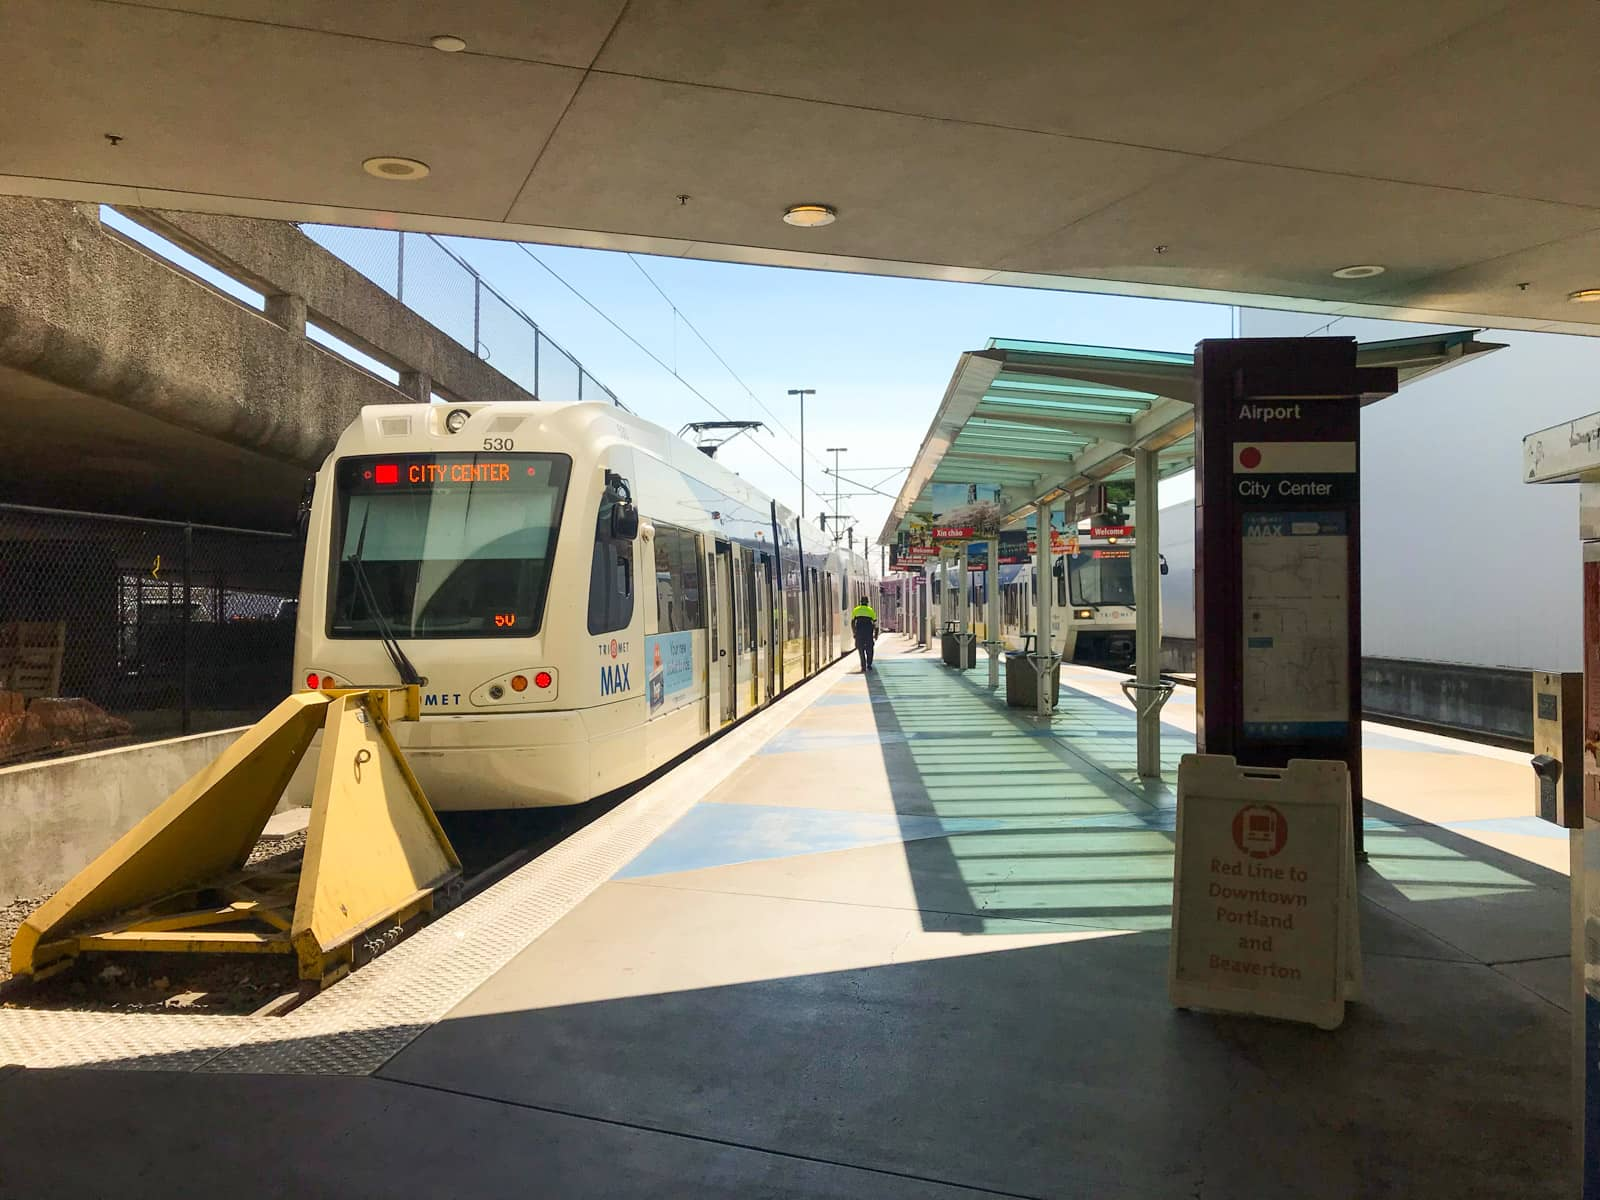 A light rail station at the end of the line. The foreground has adequate shade, and there is a light rail vehicle awaiting passengers.